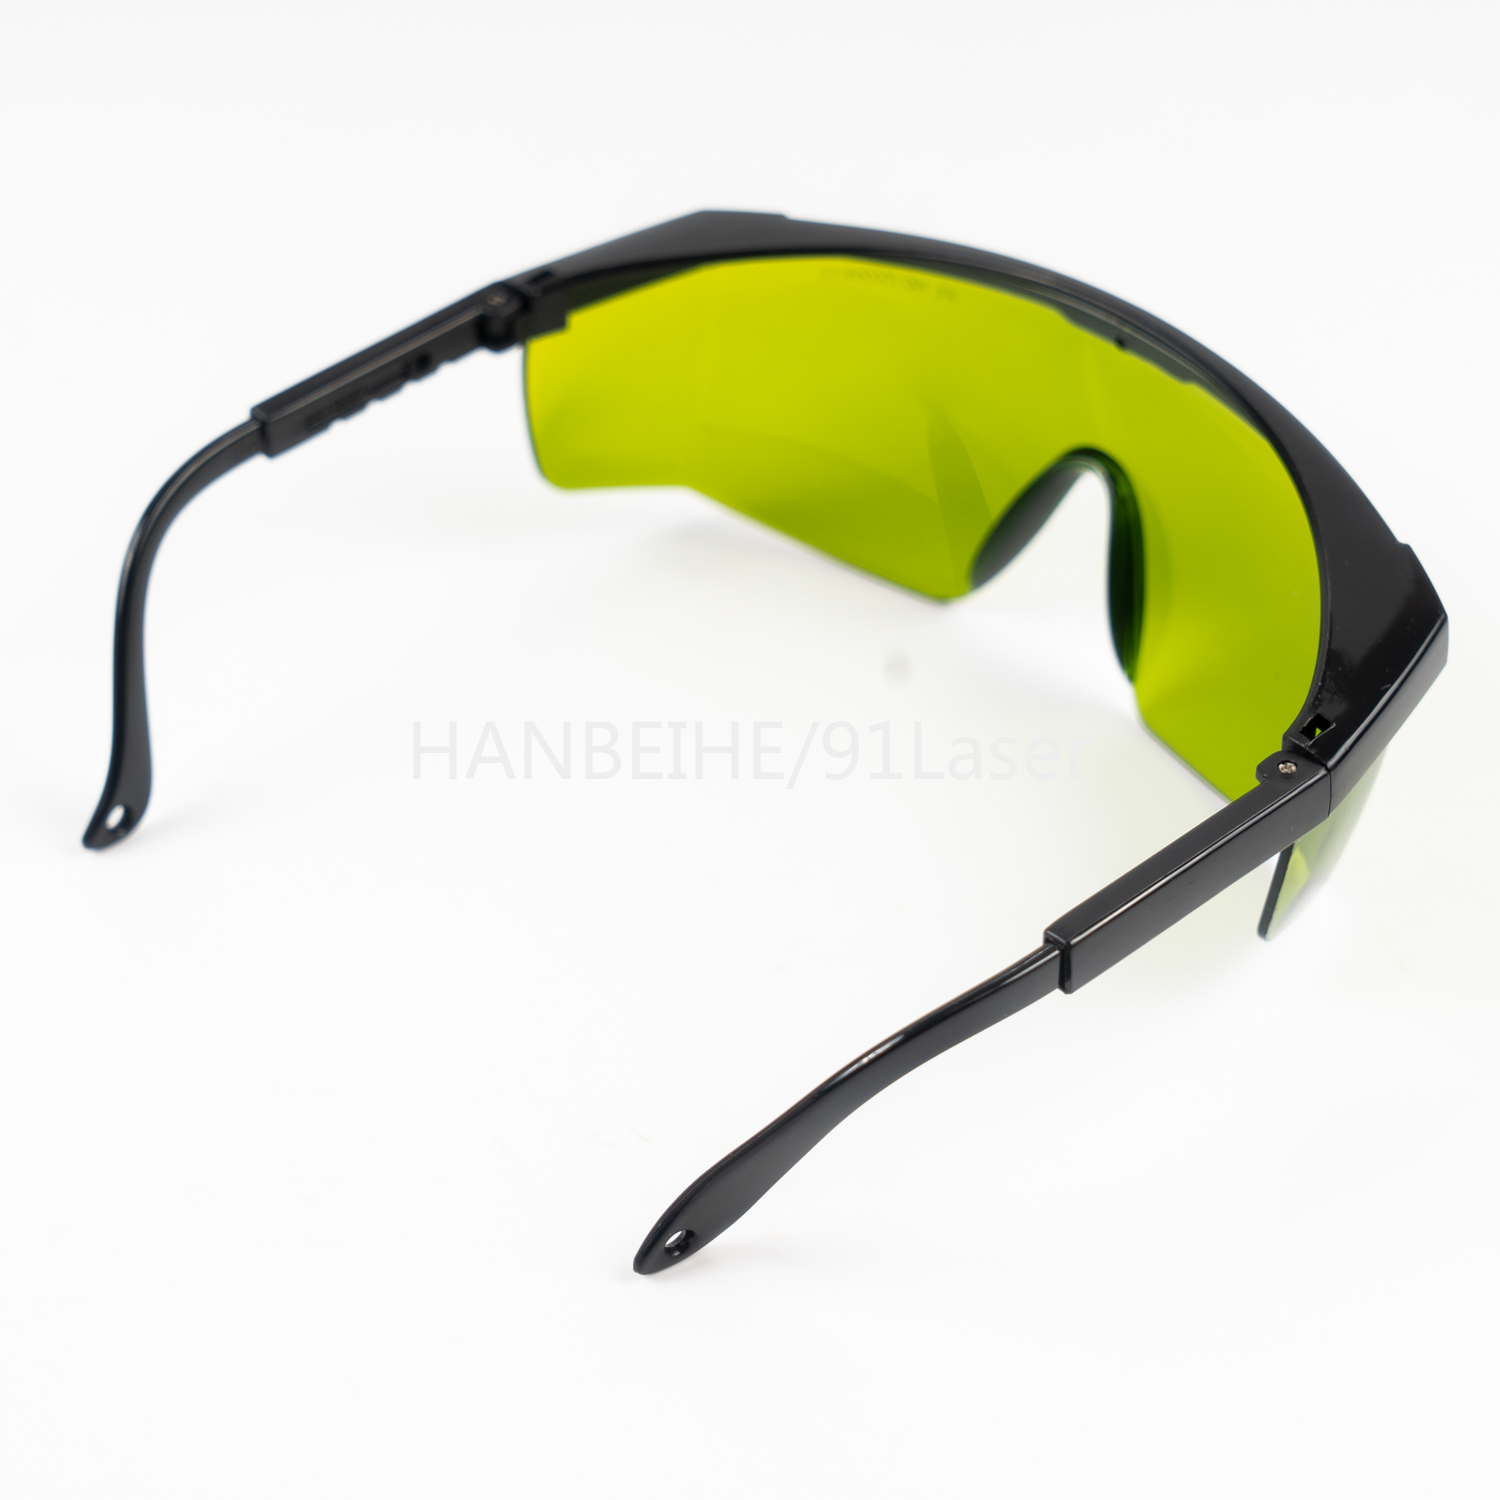 IPL Laser Safety Glasses for IPL Machines, Intense Pulsed Lights, E-lights 190-2000nm CE with Accessories